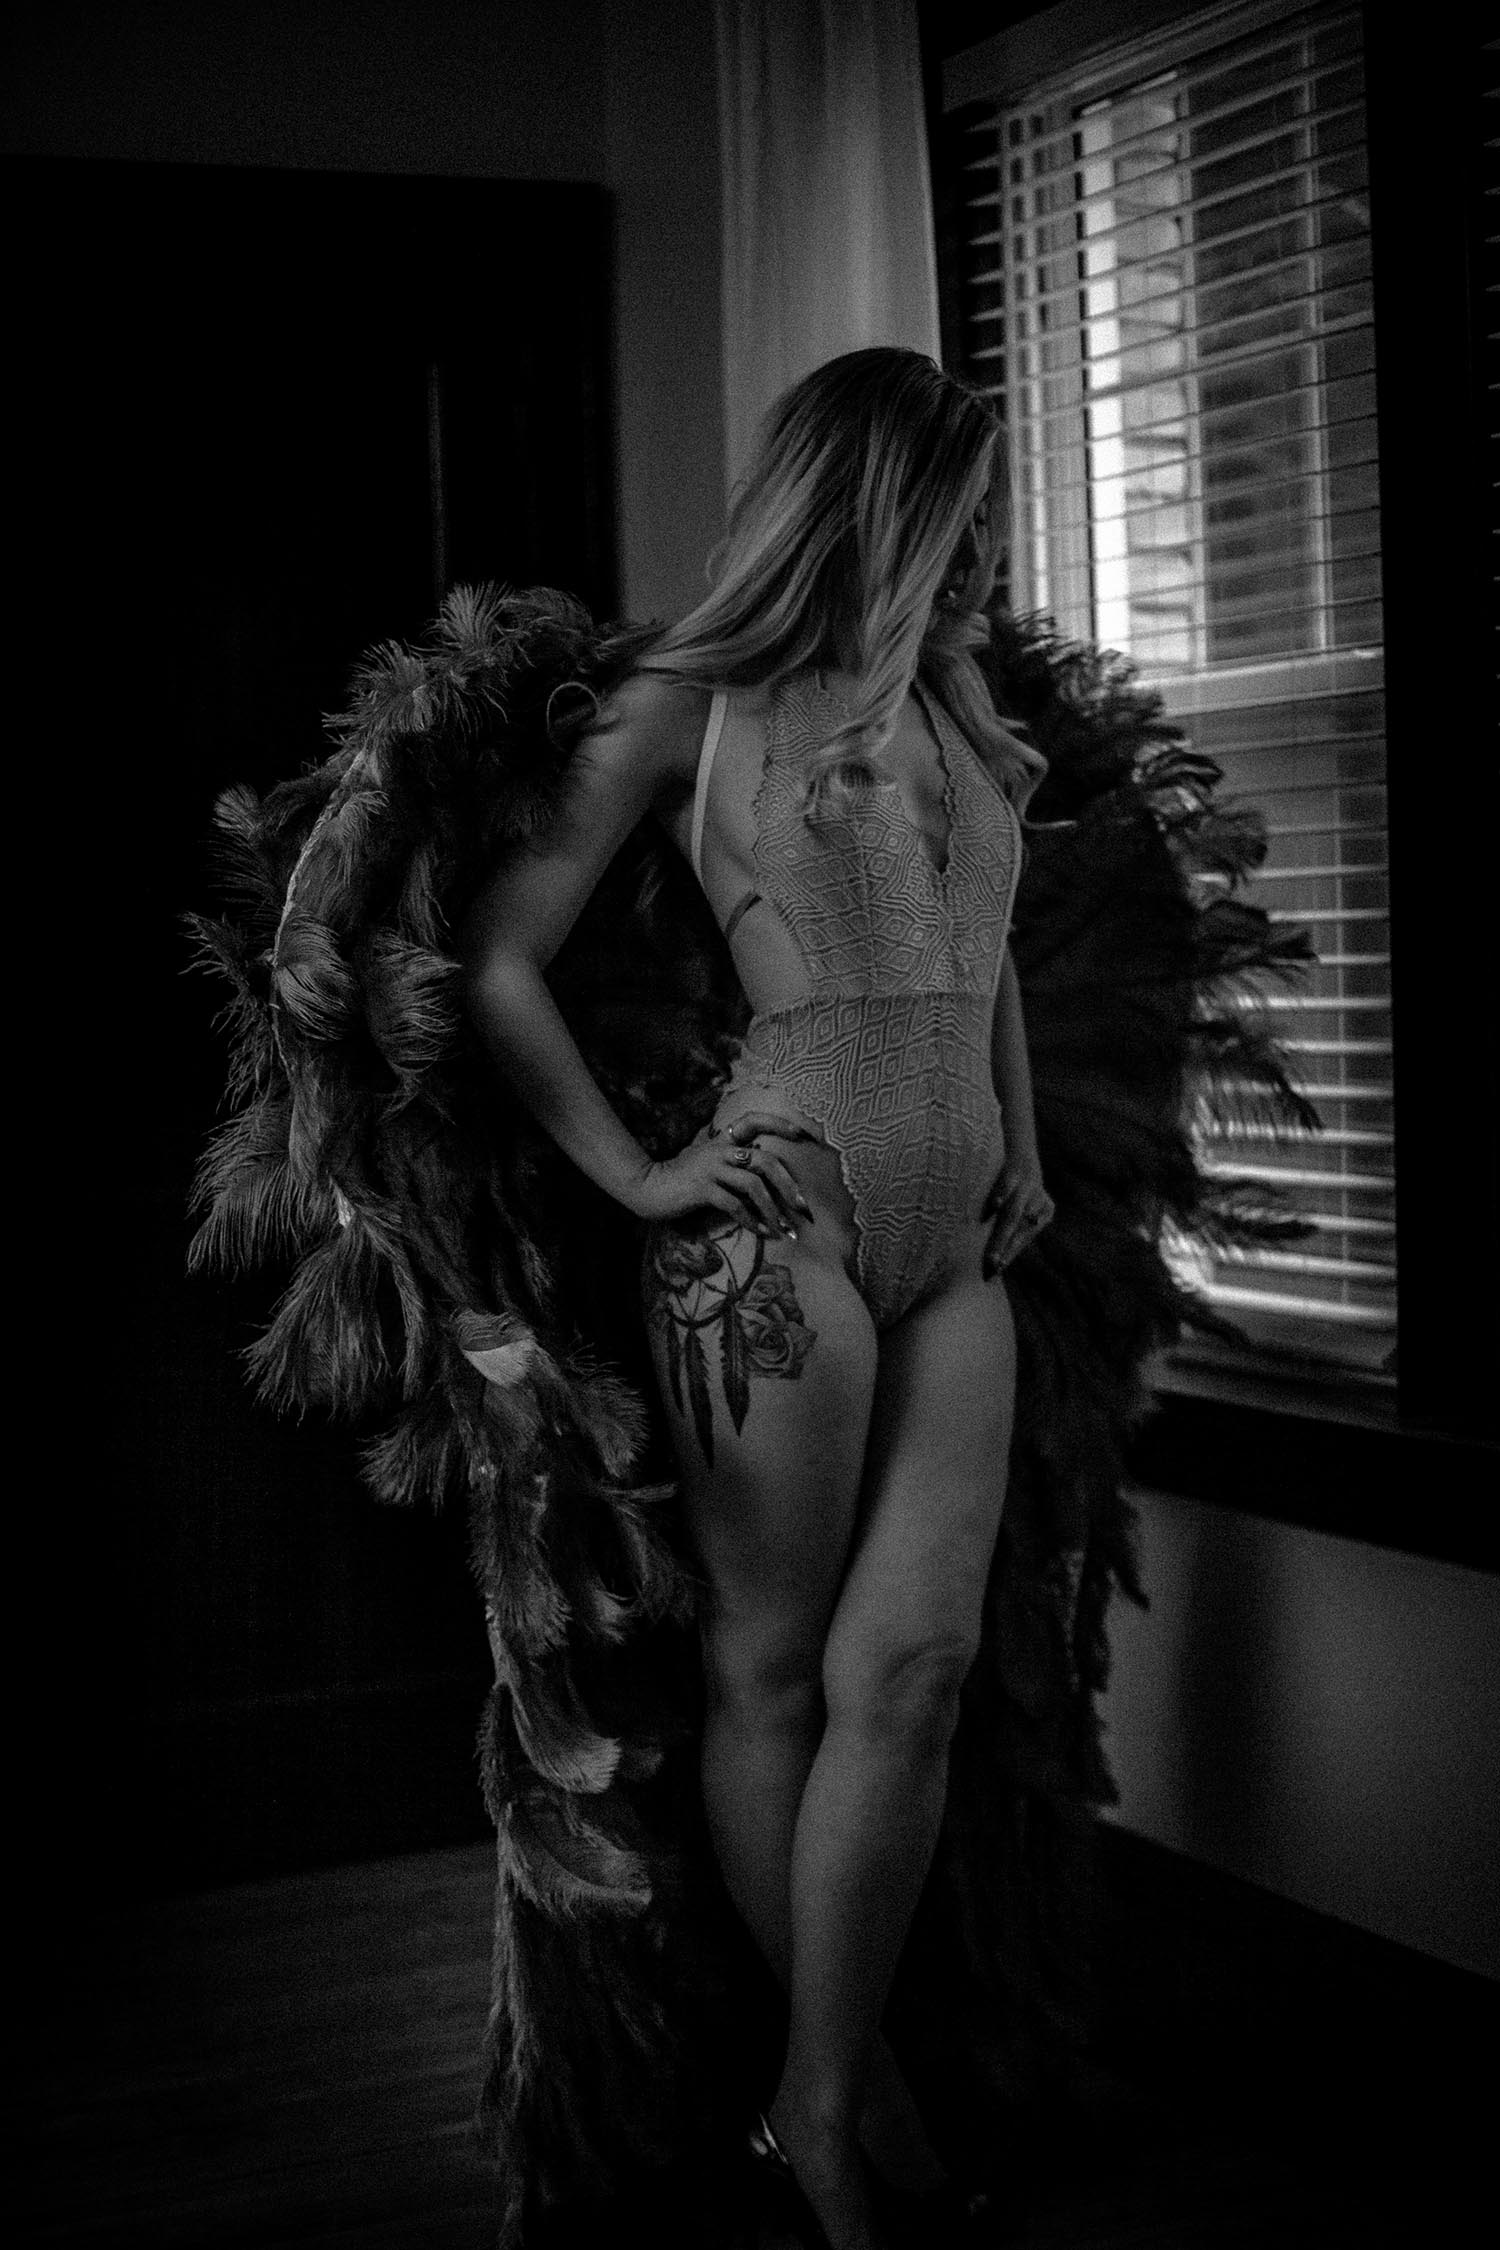 Dark moody black and white intimate portrait  with angel wings, using window light. Twin Cities Boudoir Photographer